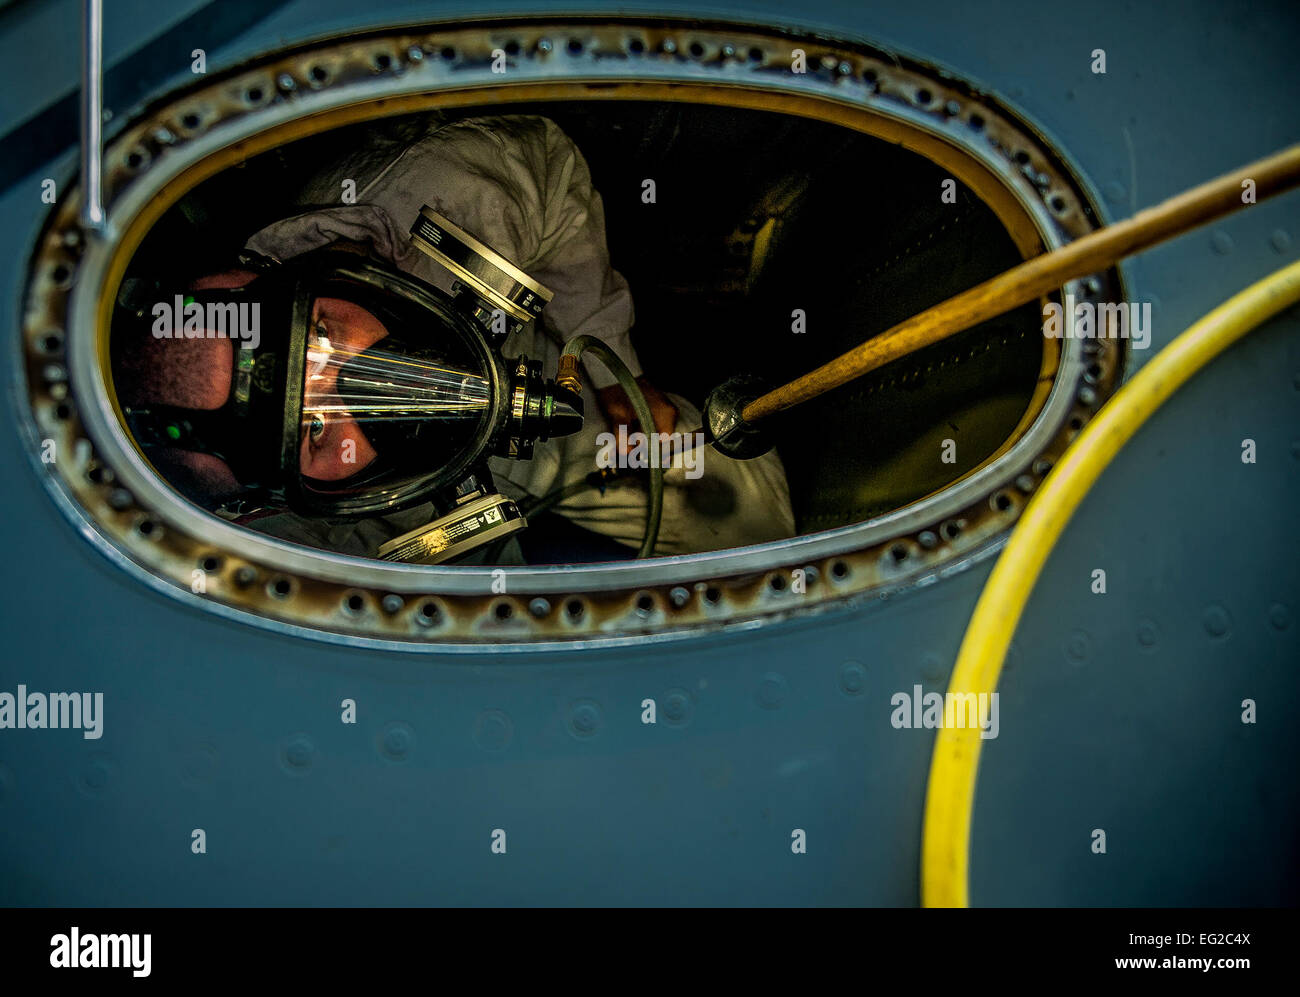 Airman 1st Class Nicholas McKinney looks up from the inside of a C-17 Globemaster III fuel tank during a routine - Stock Image